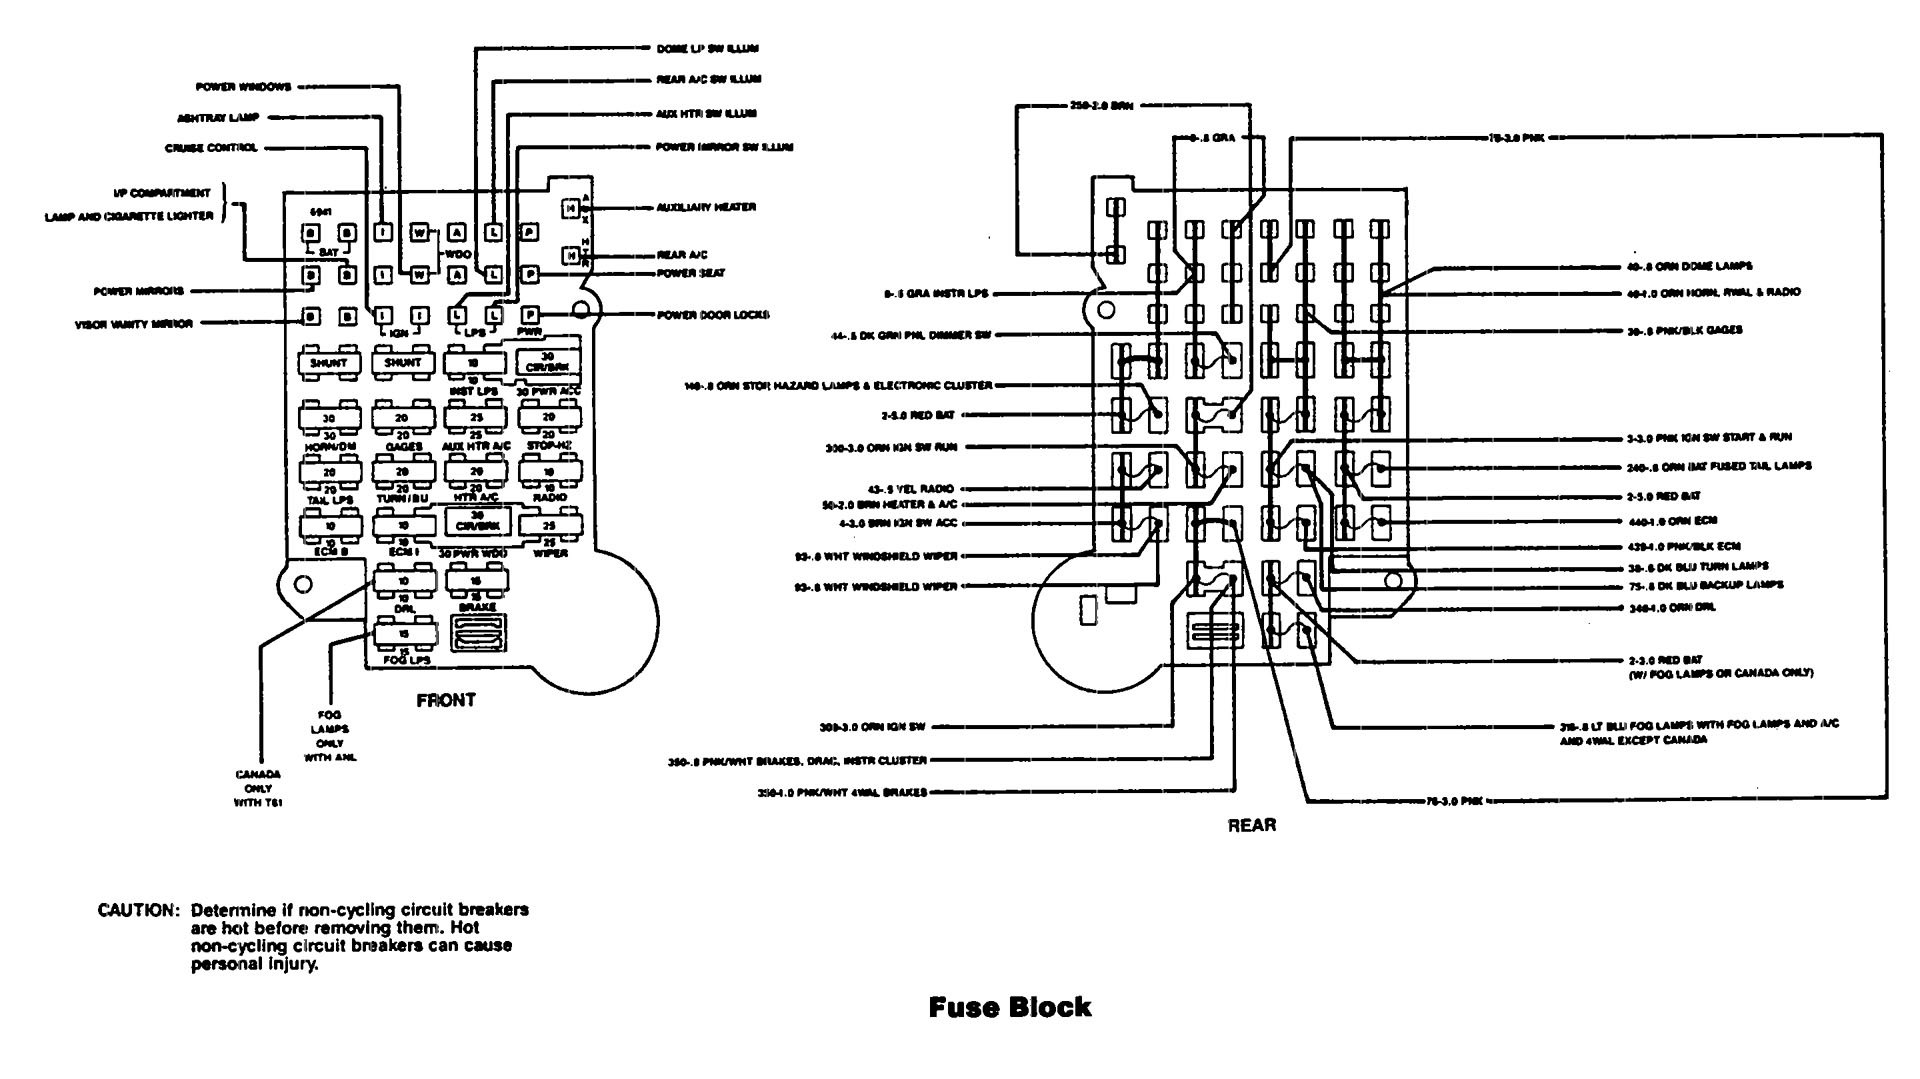 1990 chevy blazer engine diagram imageresizertool com 2002 Chevy S10 Fuse Box Diagram 1999 Chevy S10 Fuse Box Diagram